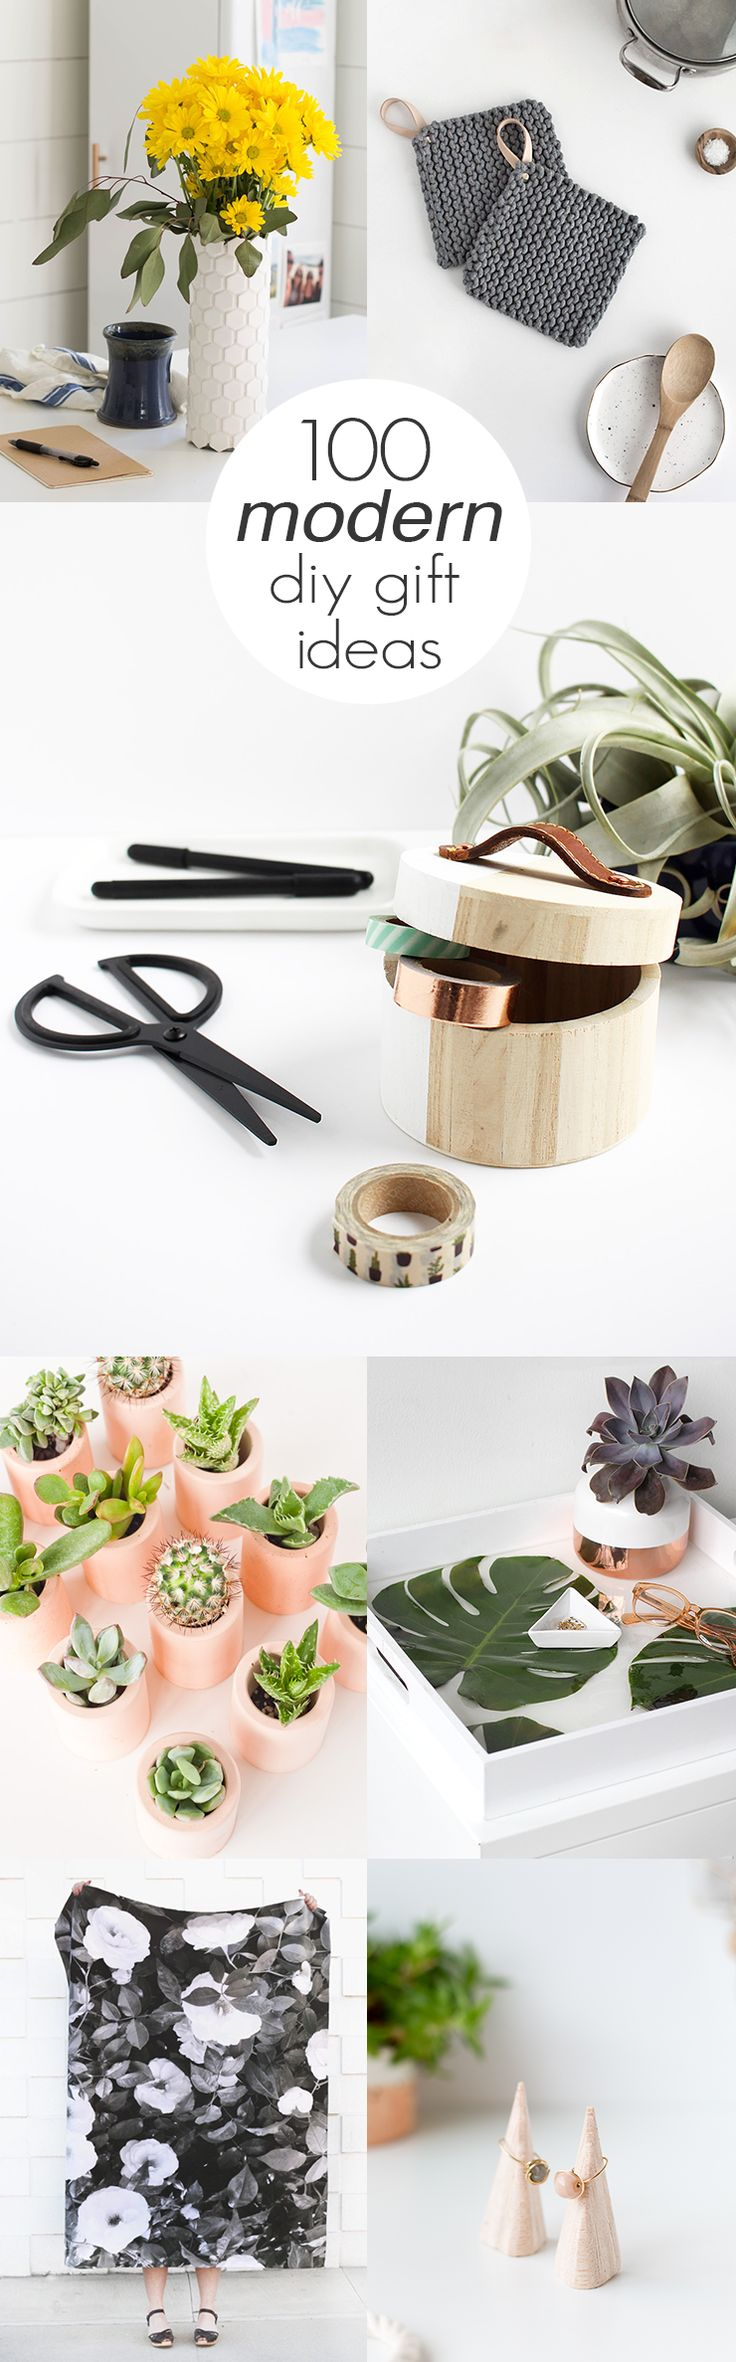 Check out these 100 modern DIY gift ideas for everyone in your life